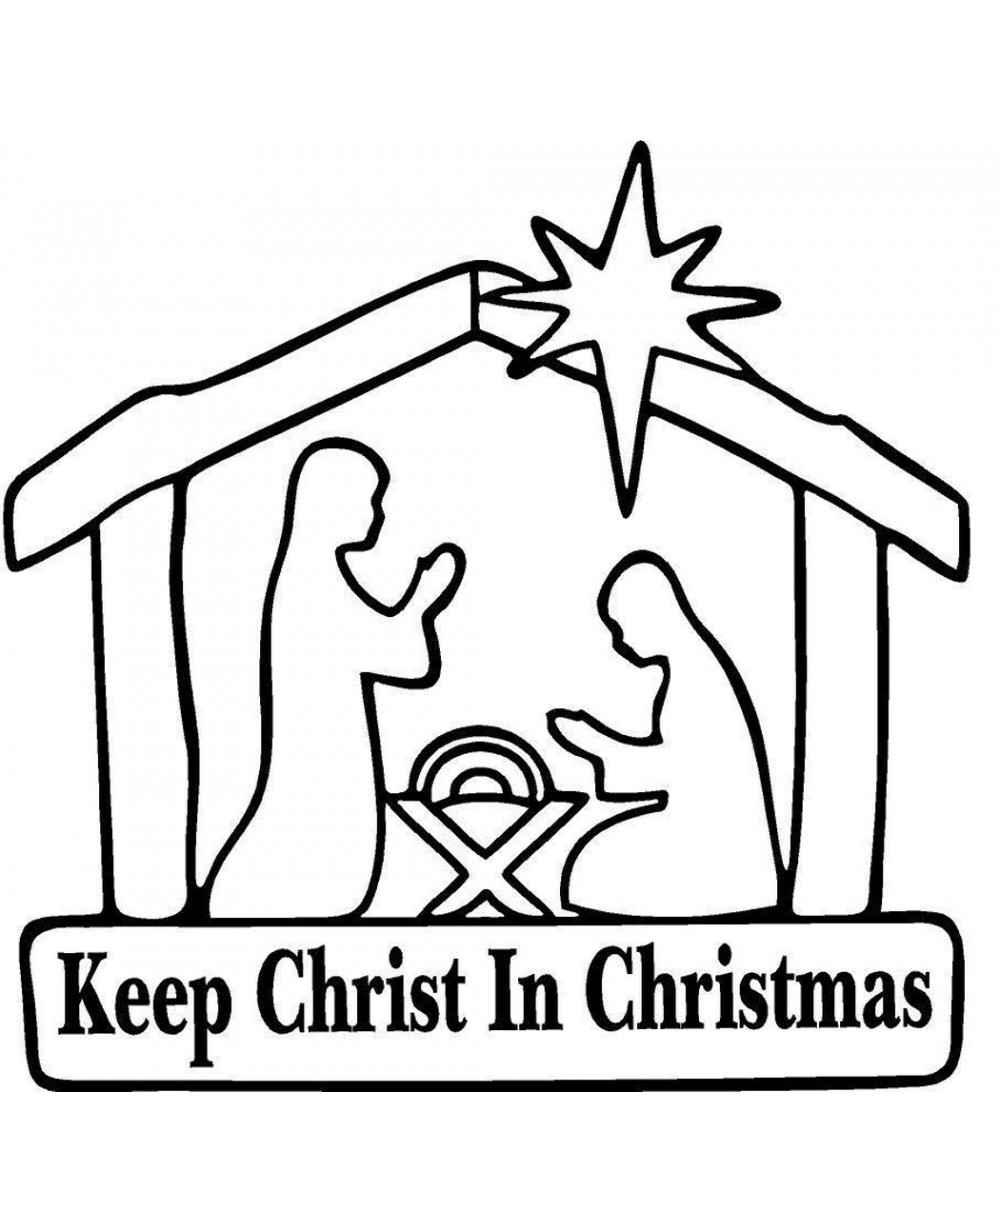 Keep Christ in Christmas BLACK Sticker Decal For Car